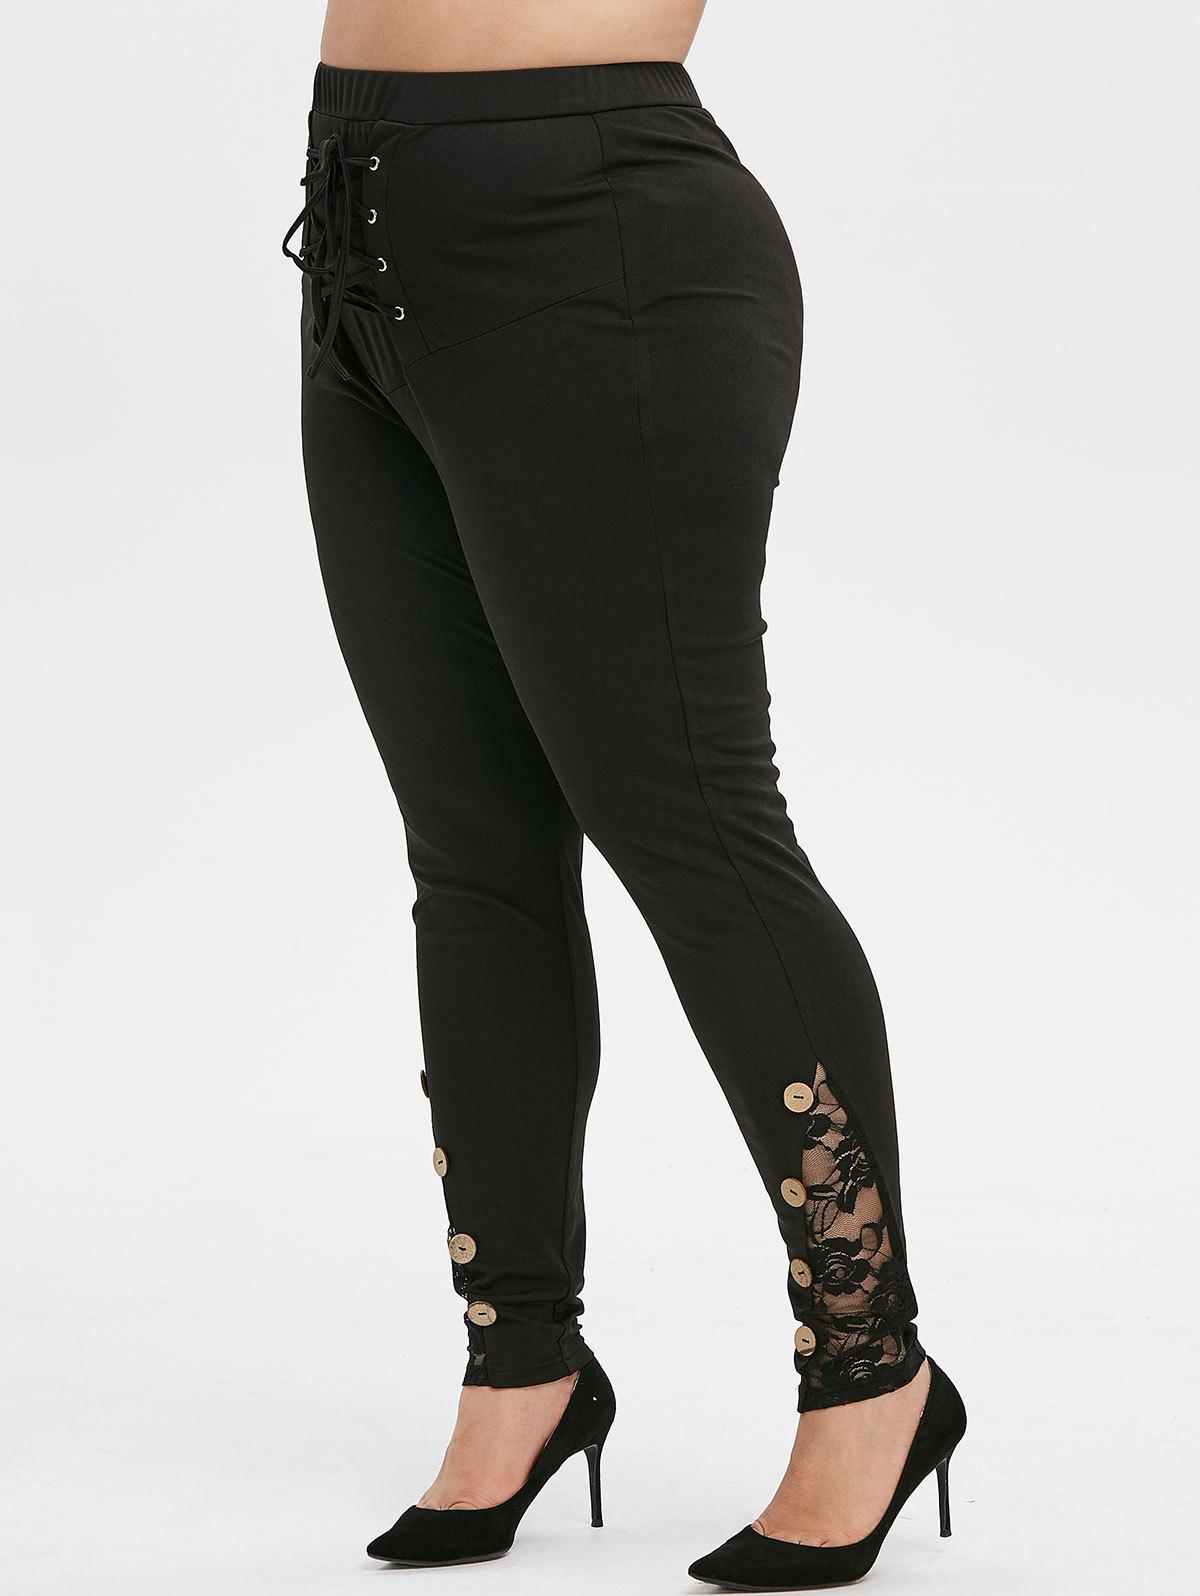 Store Plus Size Lace Up Buttons Tight Leggings